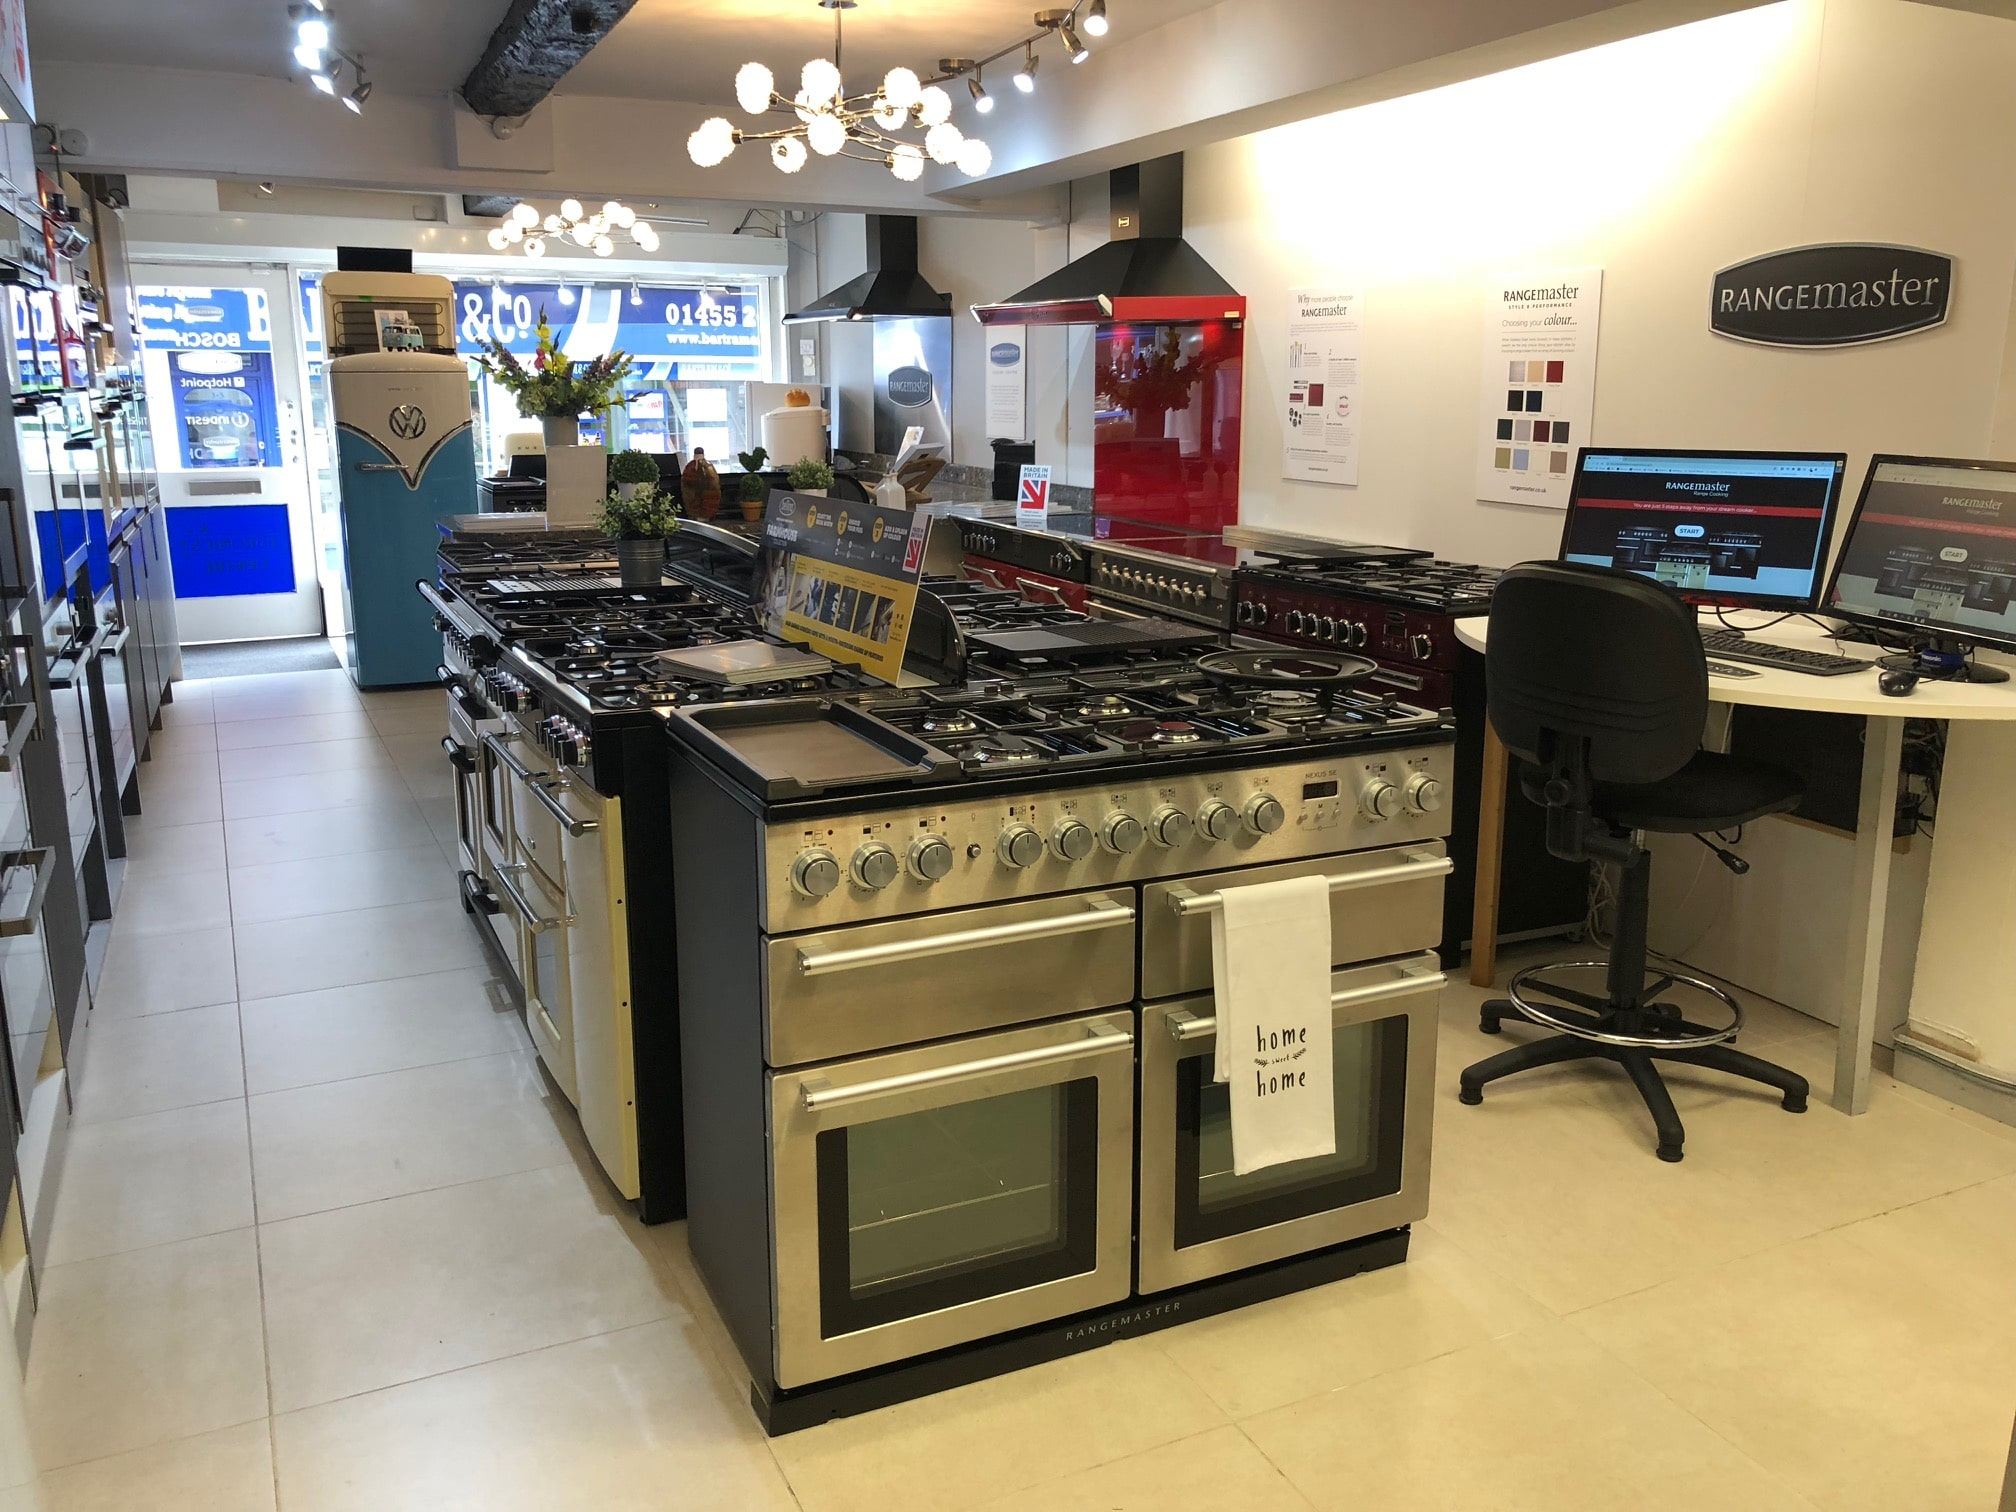 Speak to the Rangemaster Experts